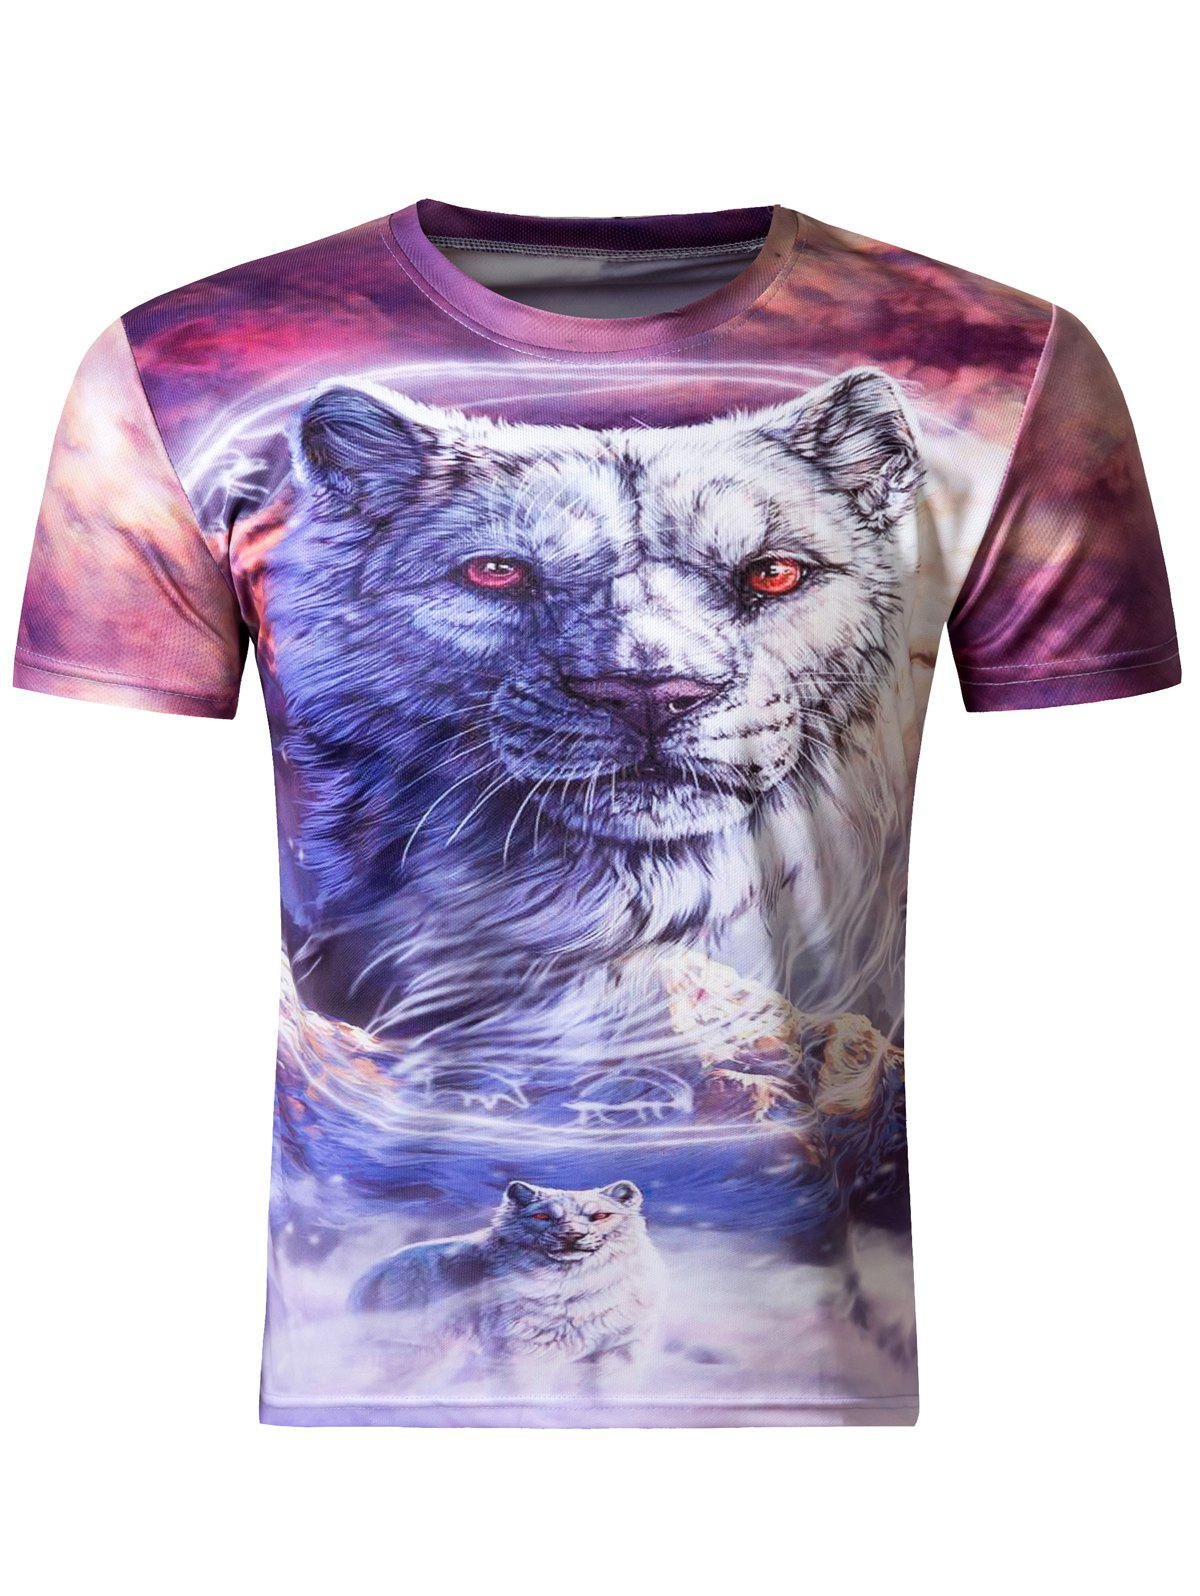 Stylish 3D Round Neck White Tiger Print Short Sleeve T-Shirt For Men - COLORMIX XL